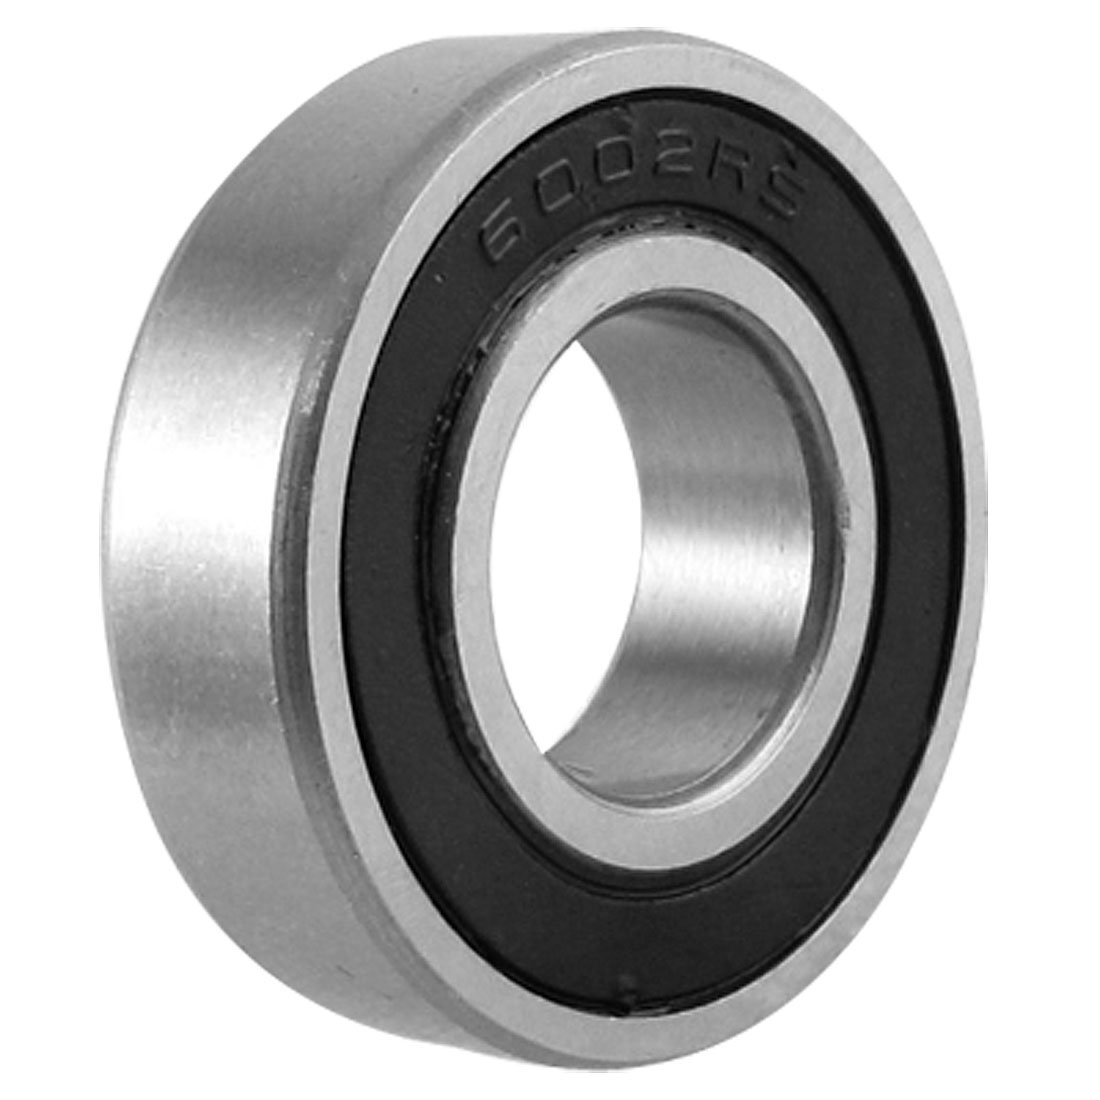 6205 - 6206 2RS & 2Z C4 fit Bearings shielded with snap ring and groove